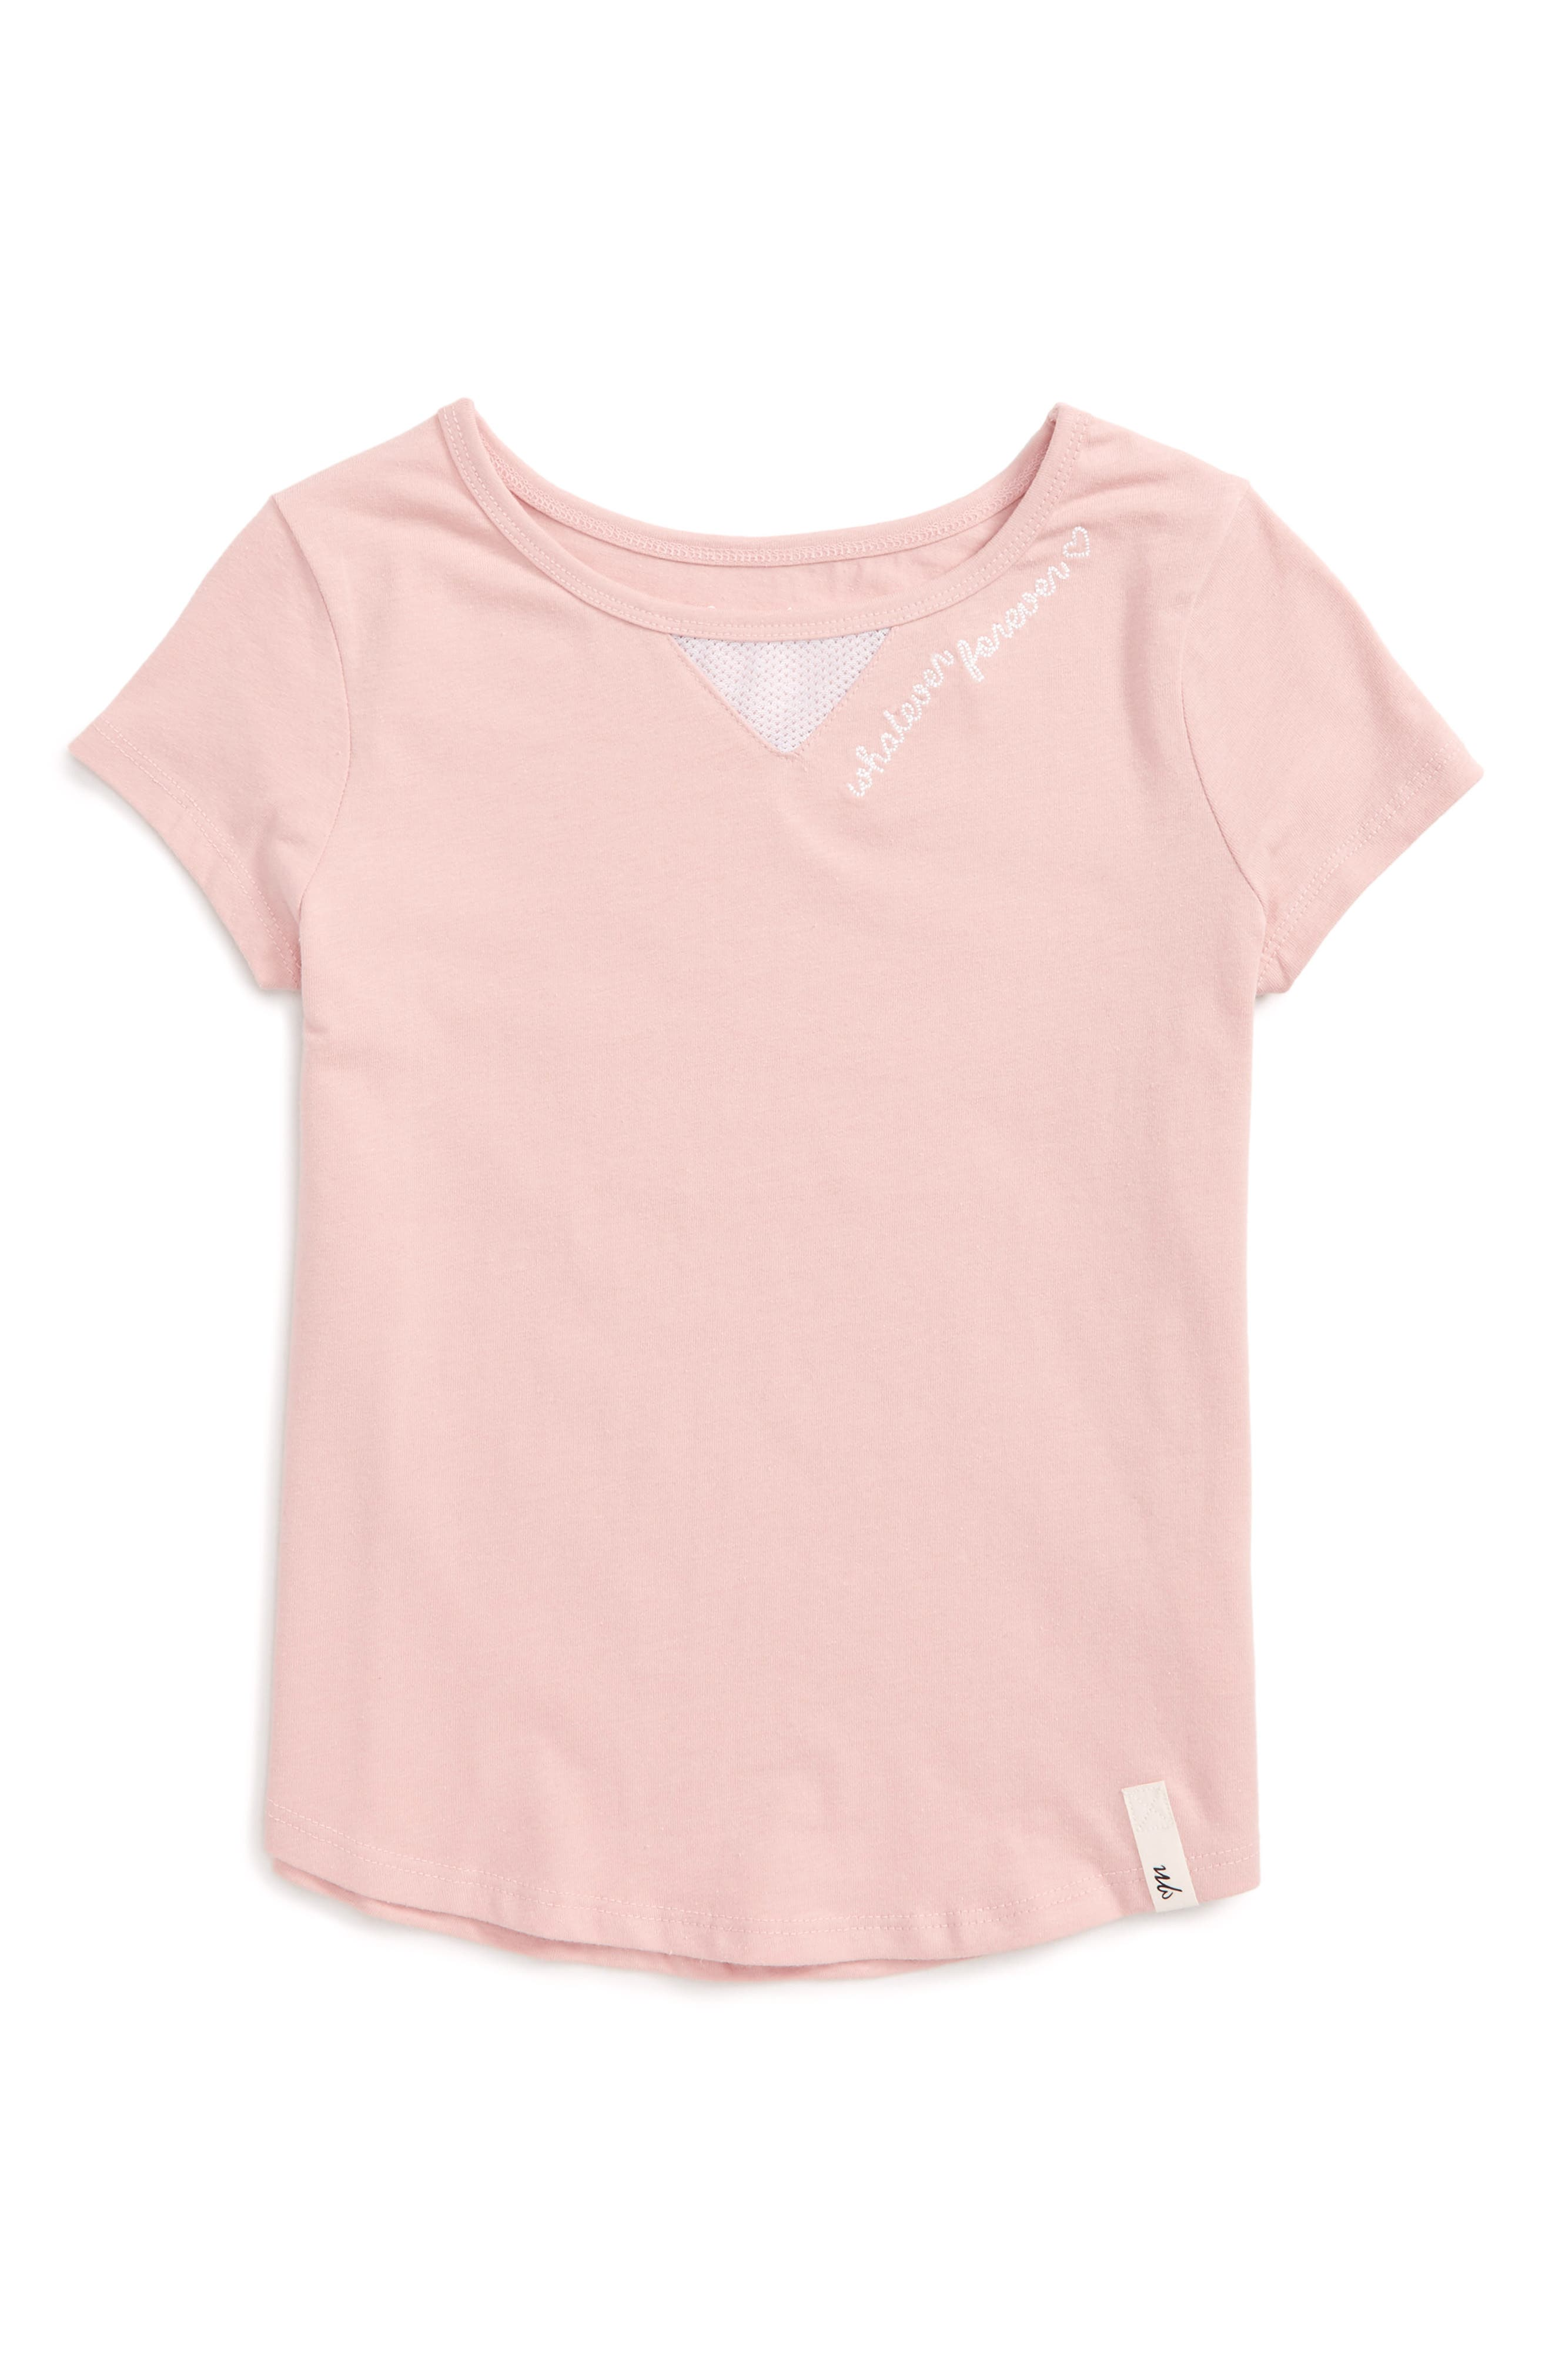 Whatever Forever Tee,                         Main,                         color, Pink